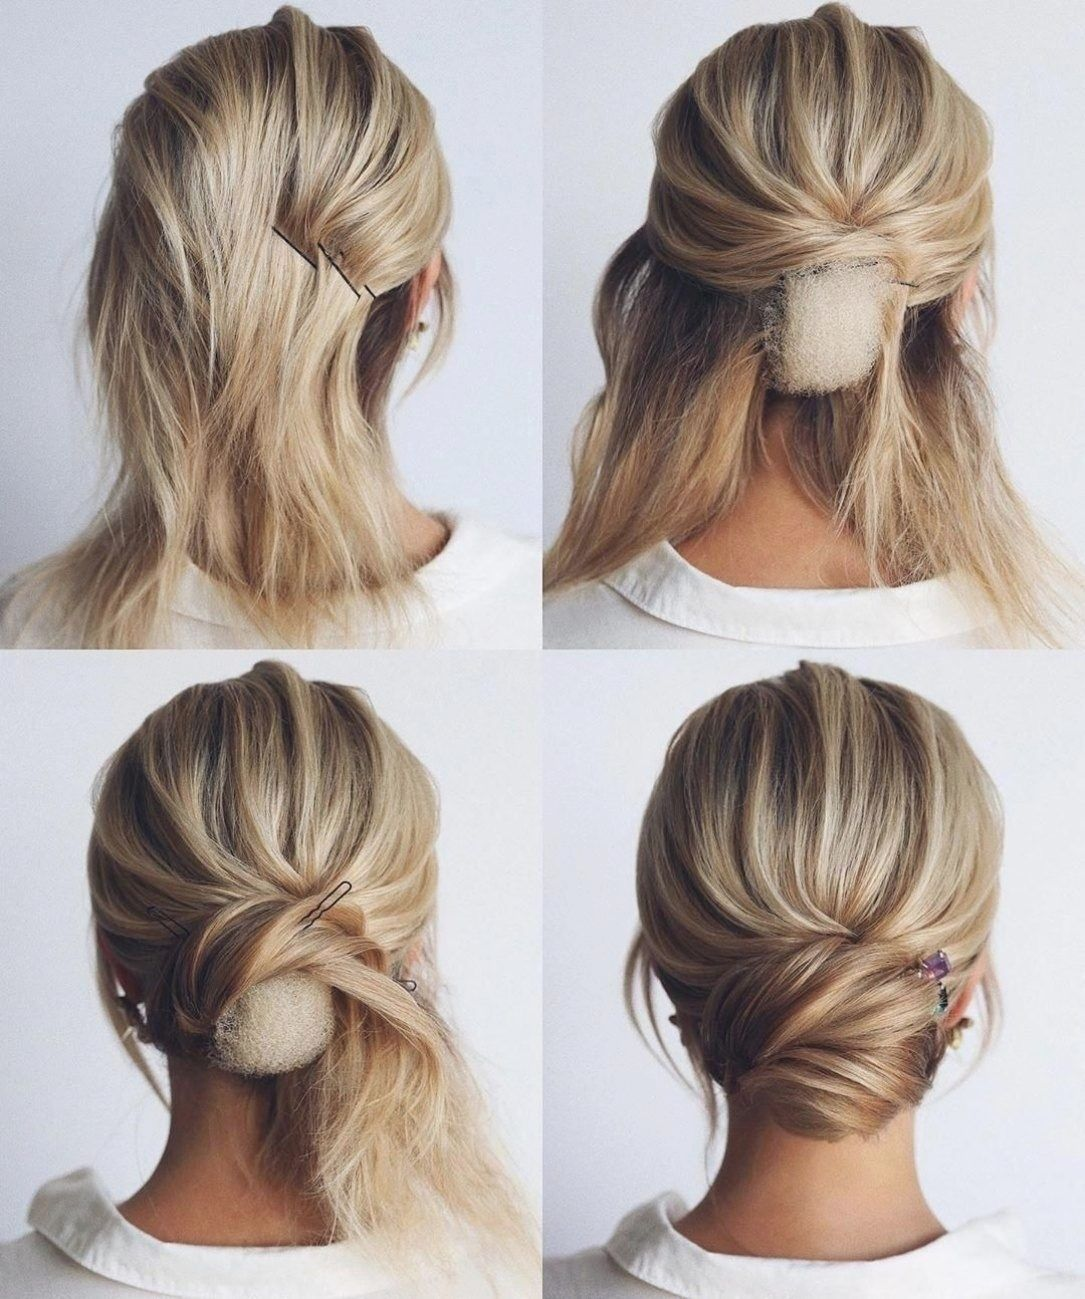 Gorgeous And Easy Homecoming Hairstyles Tutorial For Women With Medium Shoulder Length To Long Hair These Hairstyles Are 2020 Sac Dogal Sac Topuzu Sac Ve Guzellik